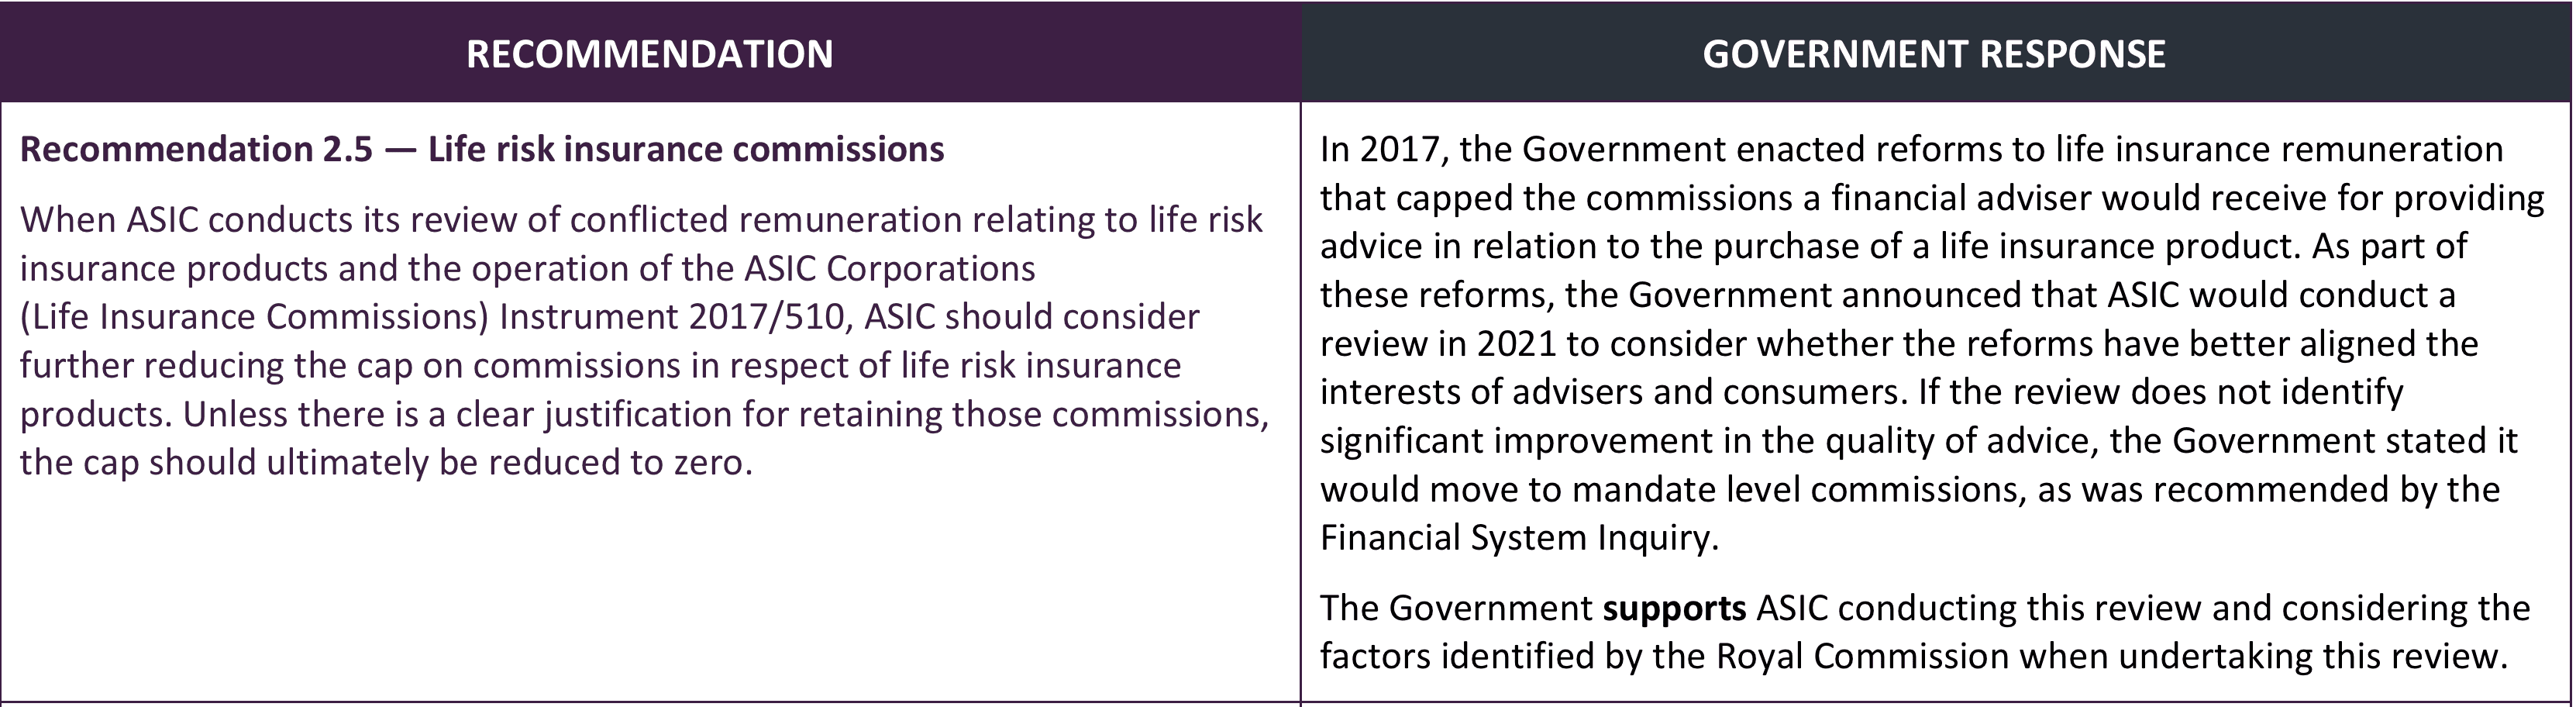 Life Insurance Risk Commissions